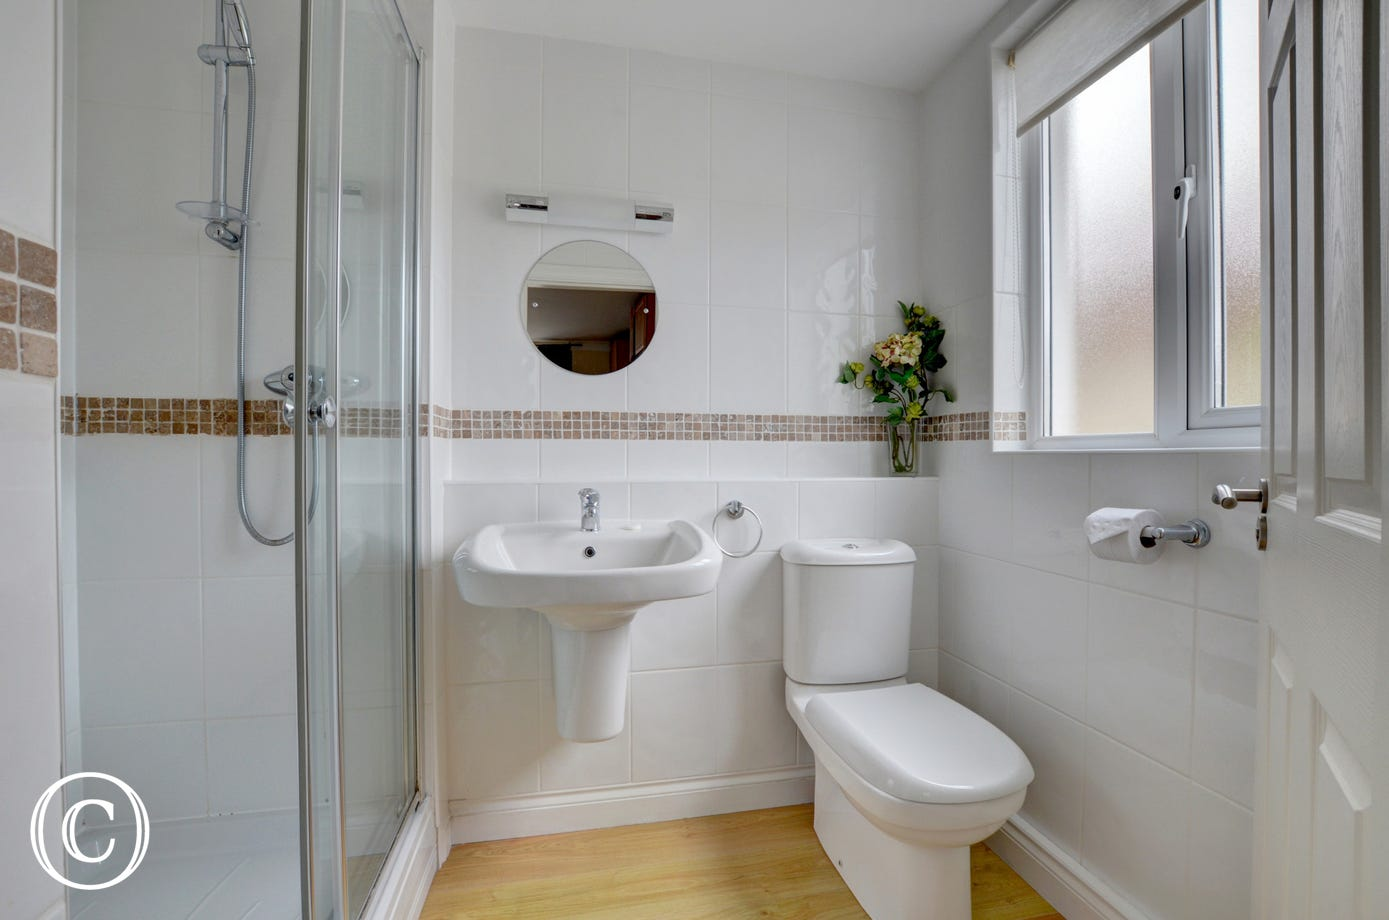 Ensuite bathroom with shower, WC and basin